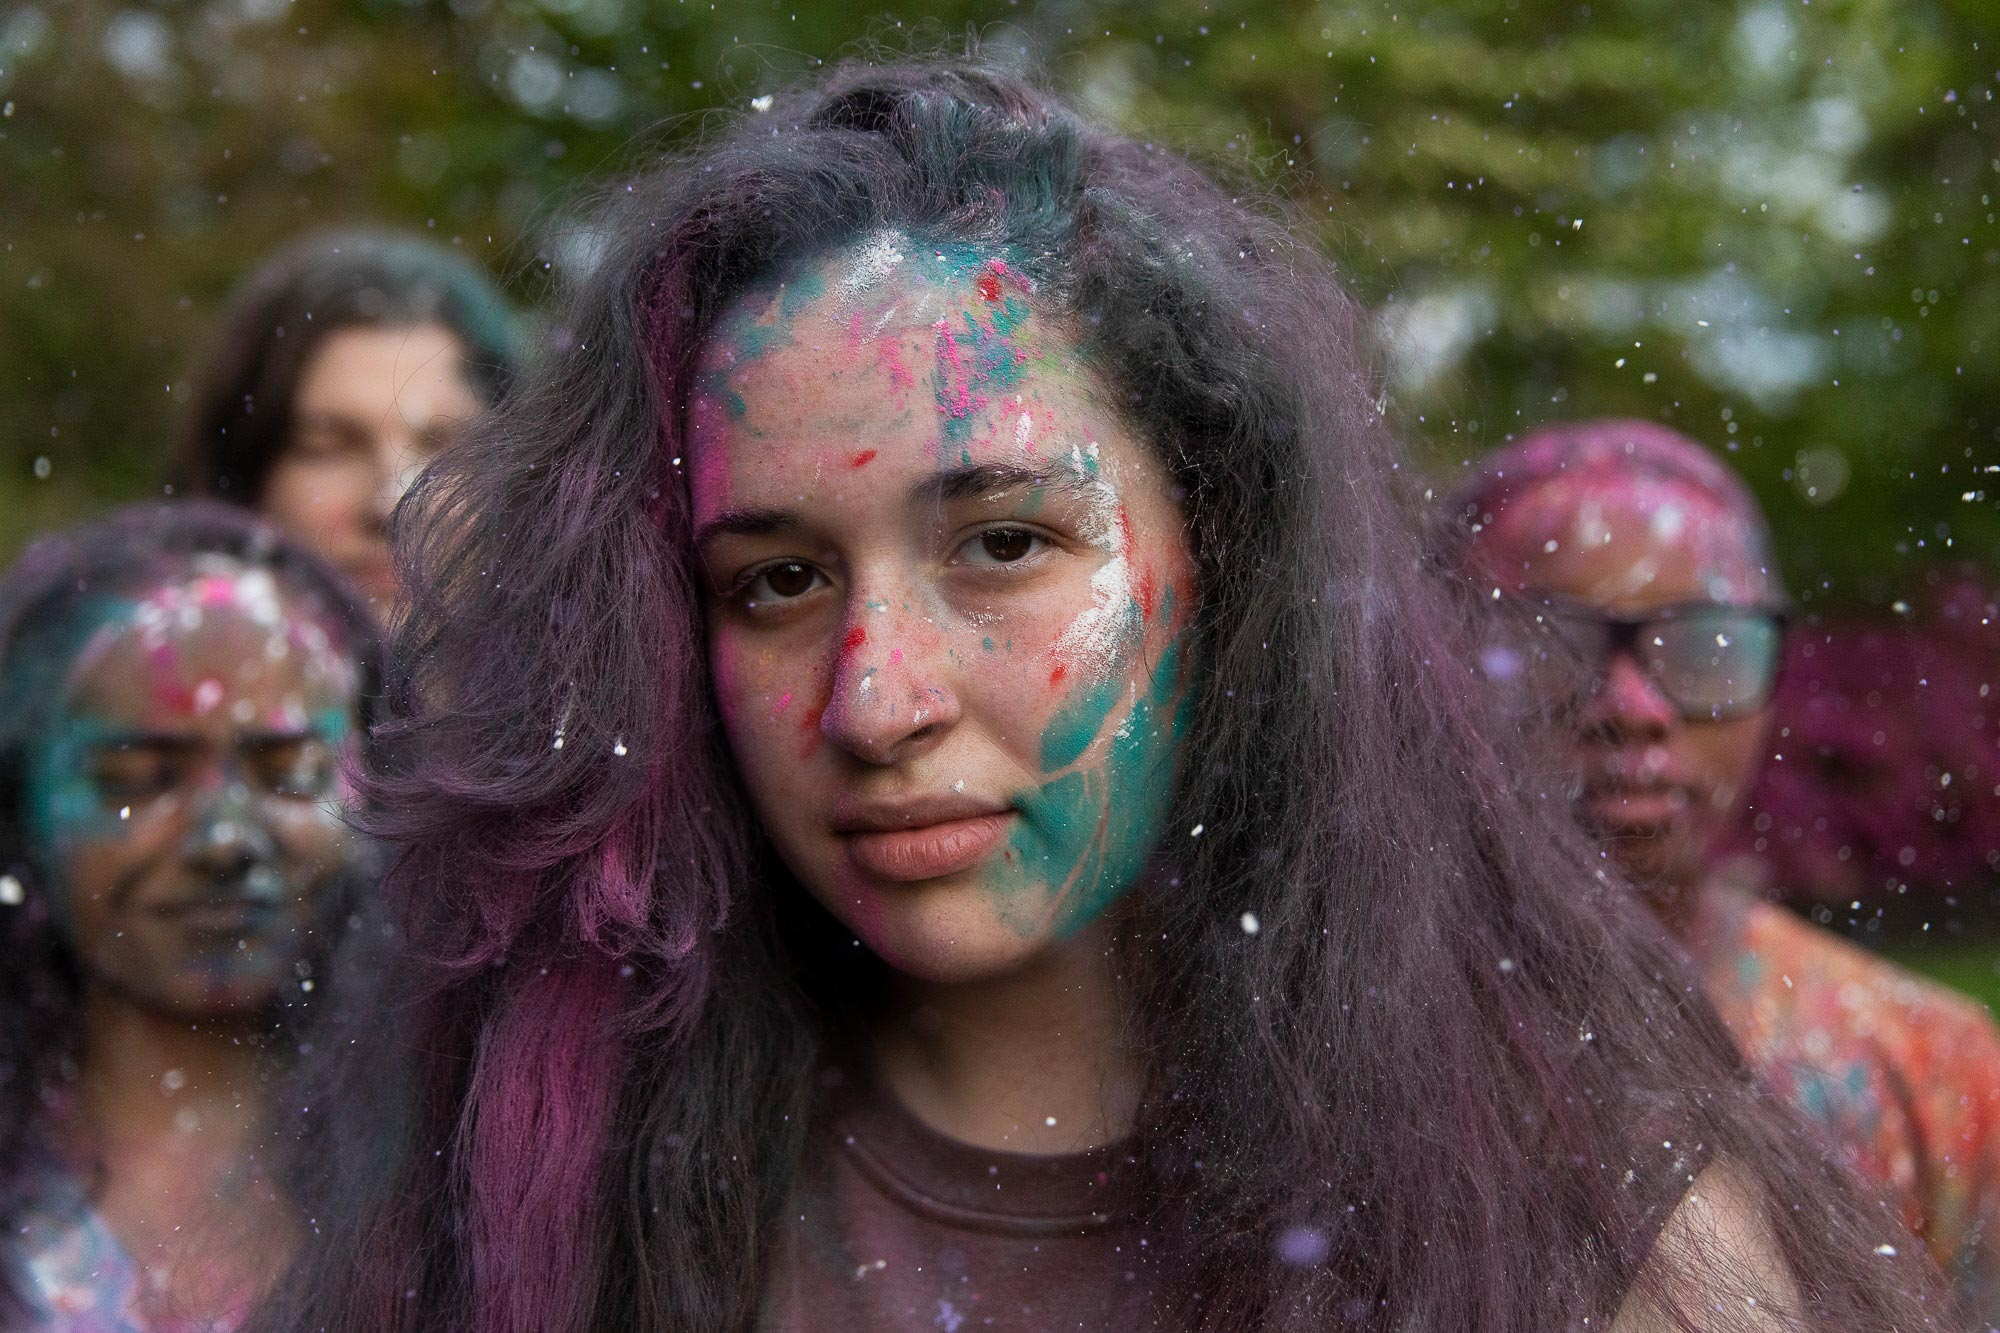 A close up portrait of a female with paint on her face